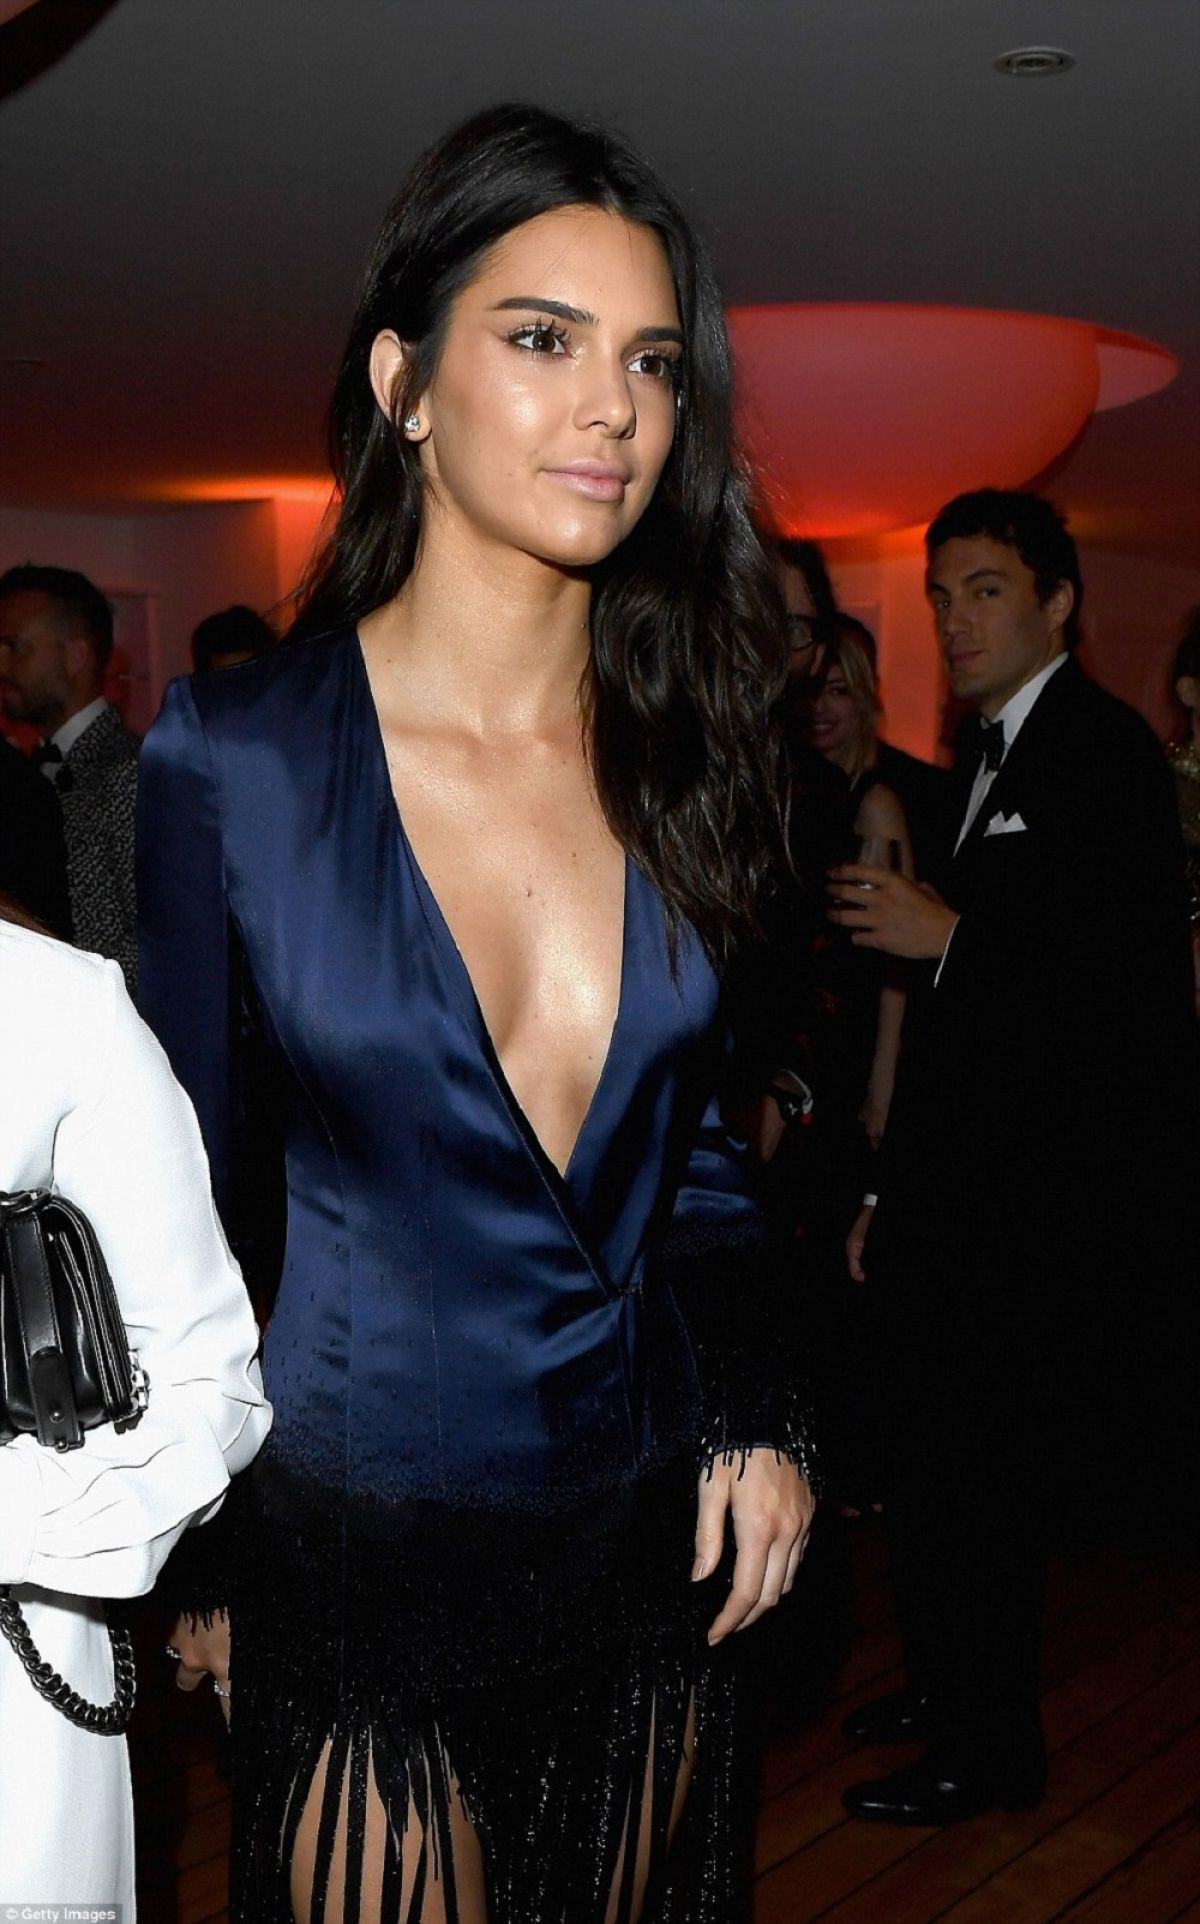 KENDALL JENNER at Vanity Fair & Chopard After-party in Cannes 05/14/2016